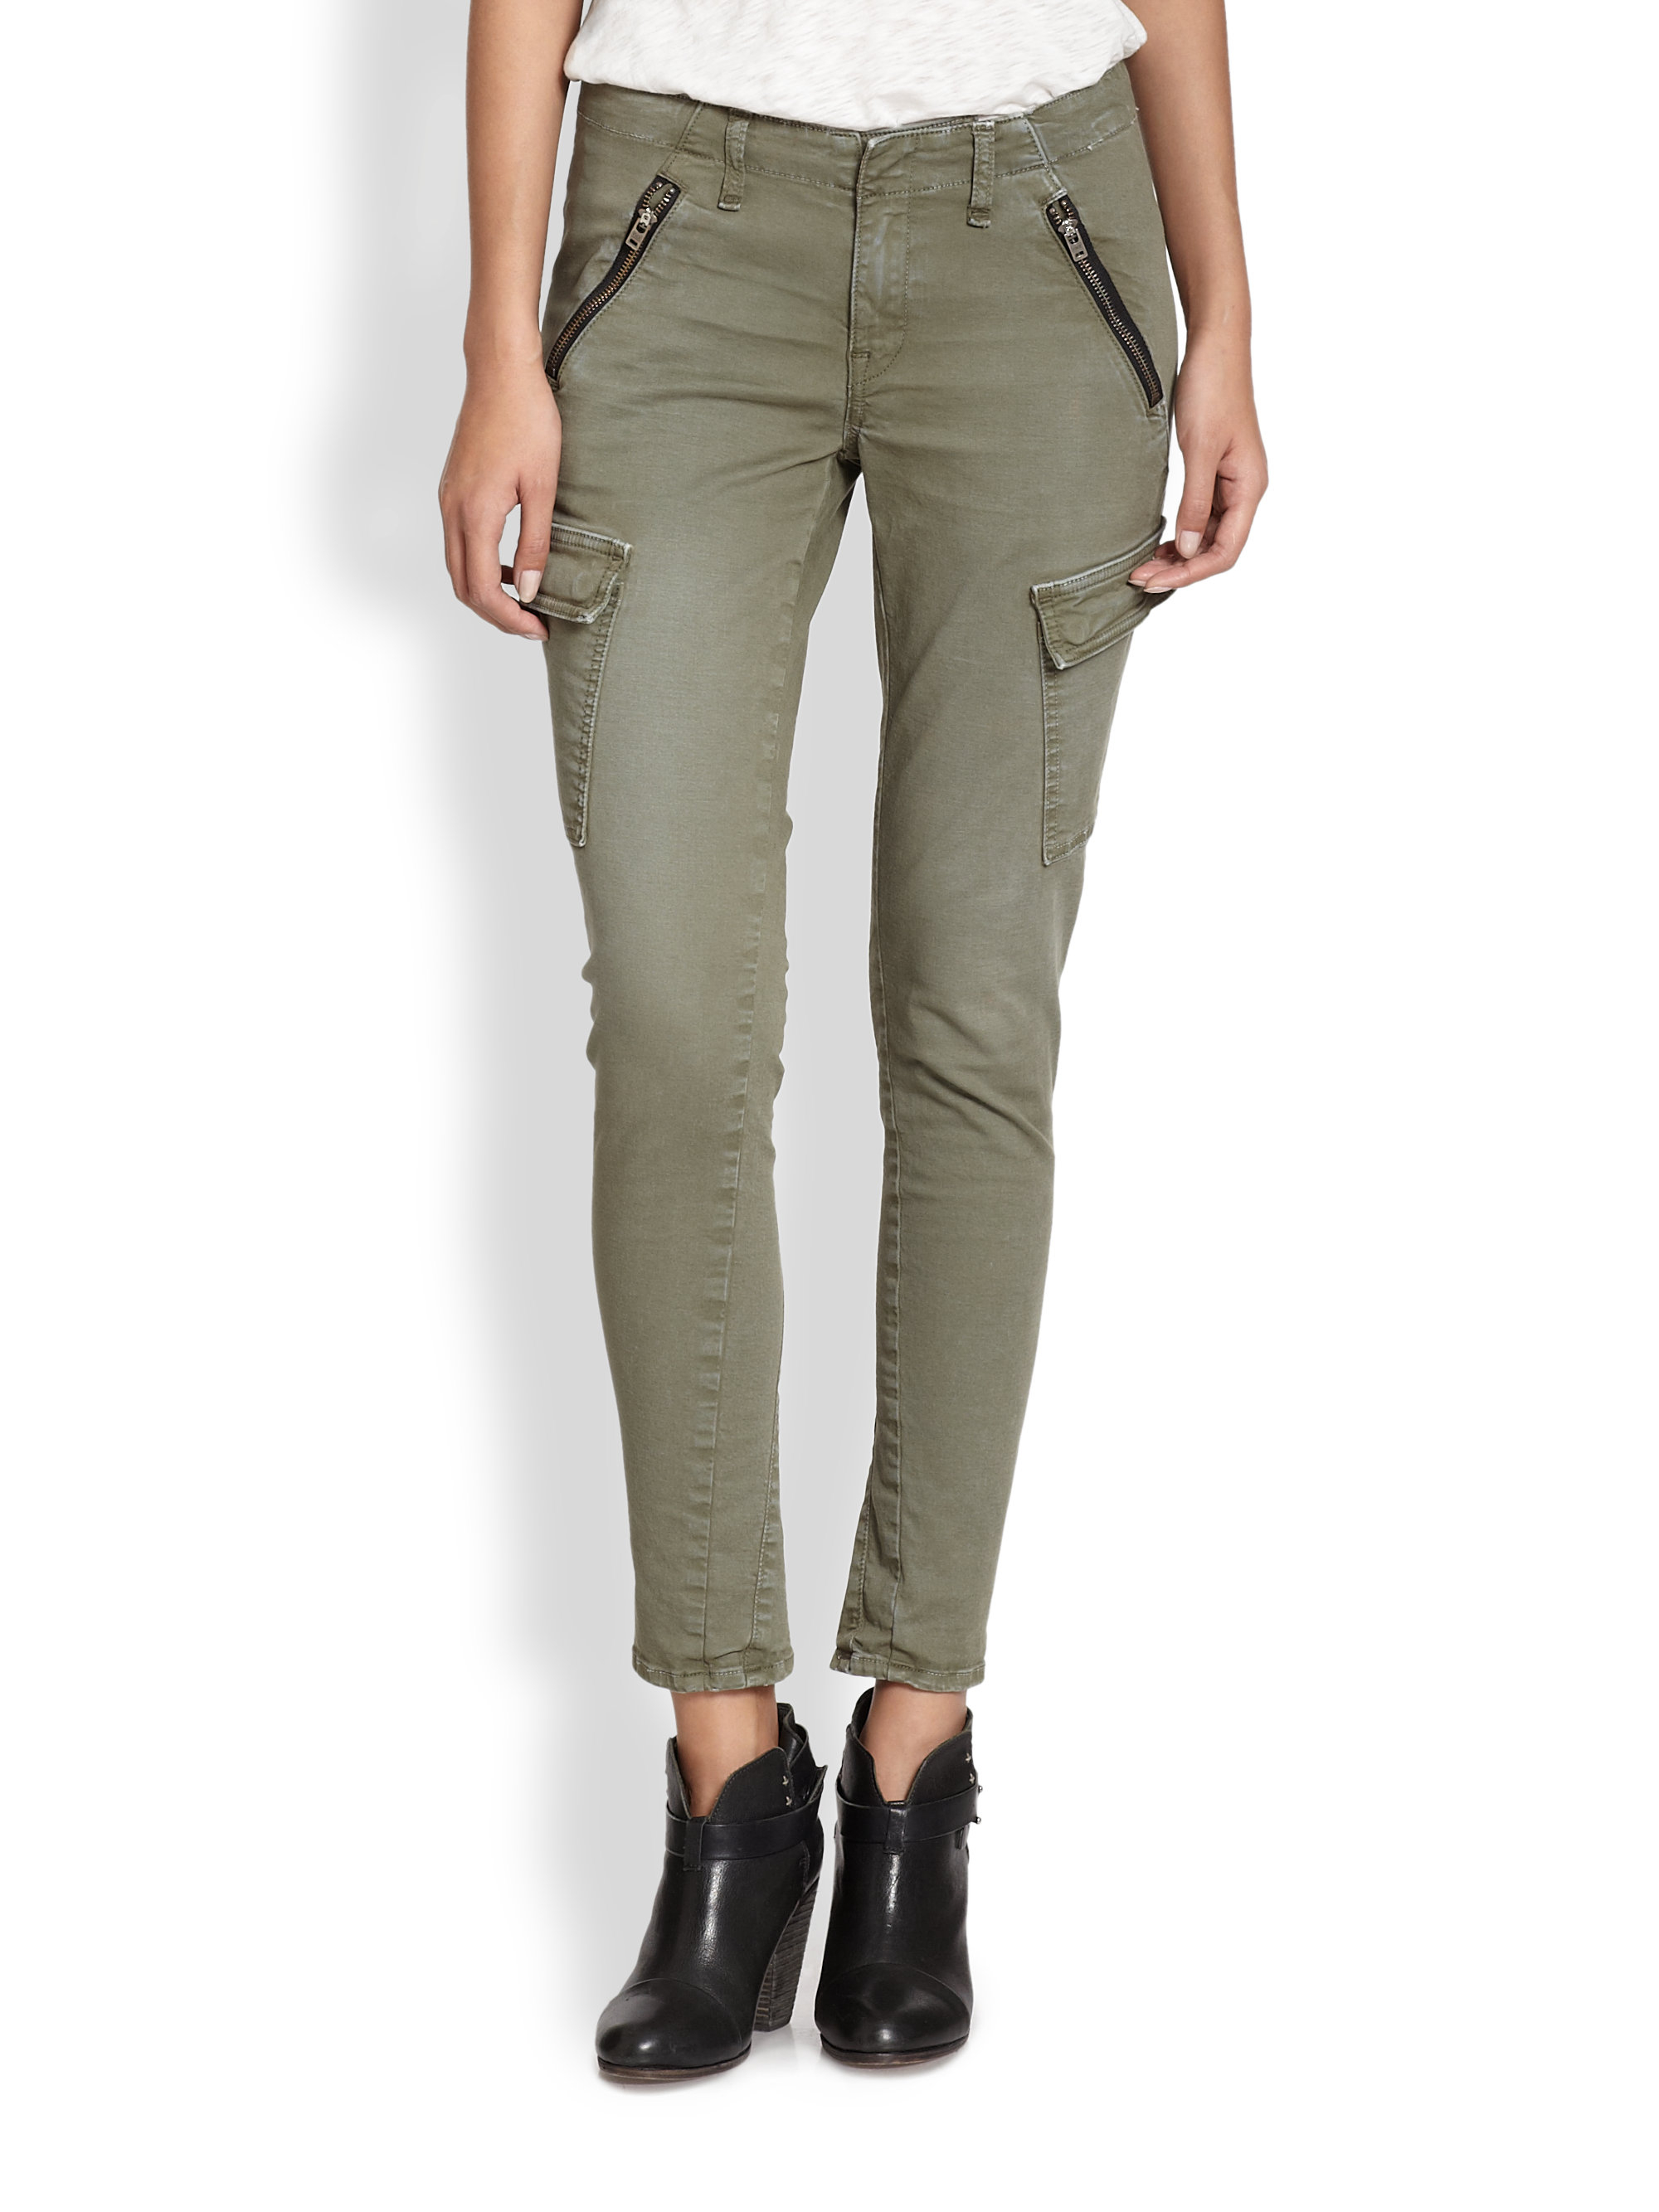 Popular Henry Amp Belle Surplus Skinny Cargo Pants  Women  Zulily